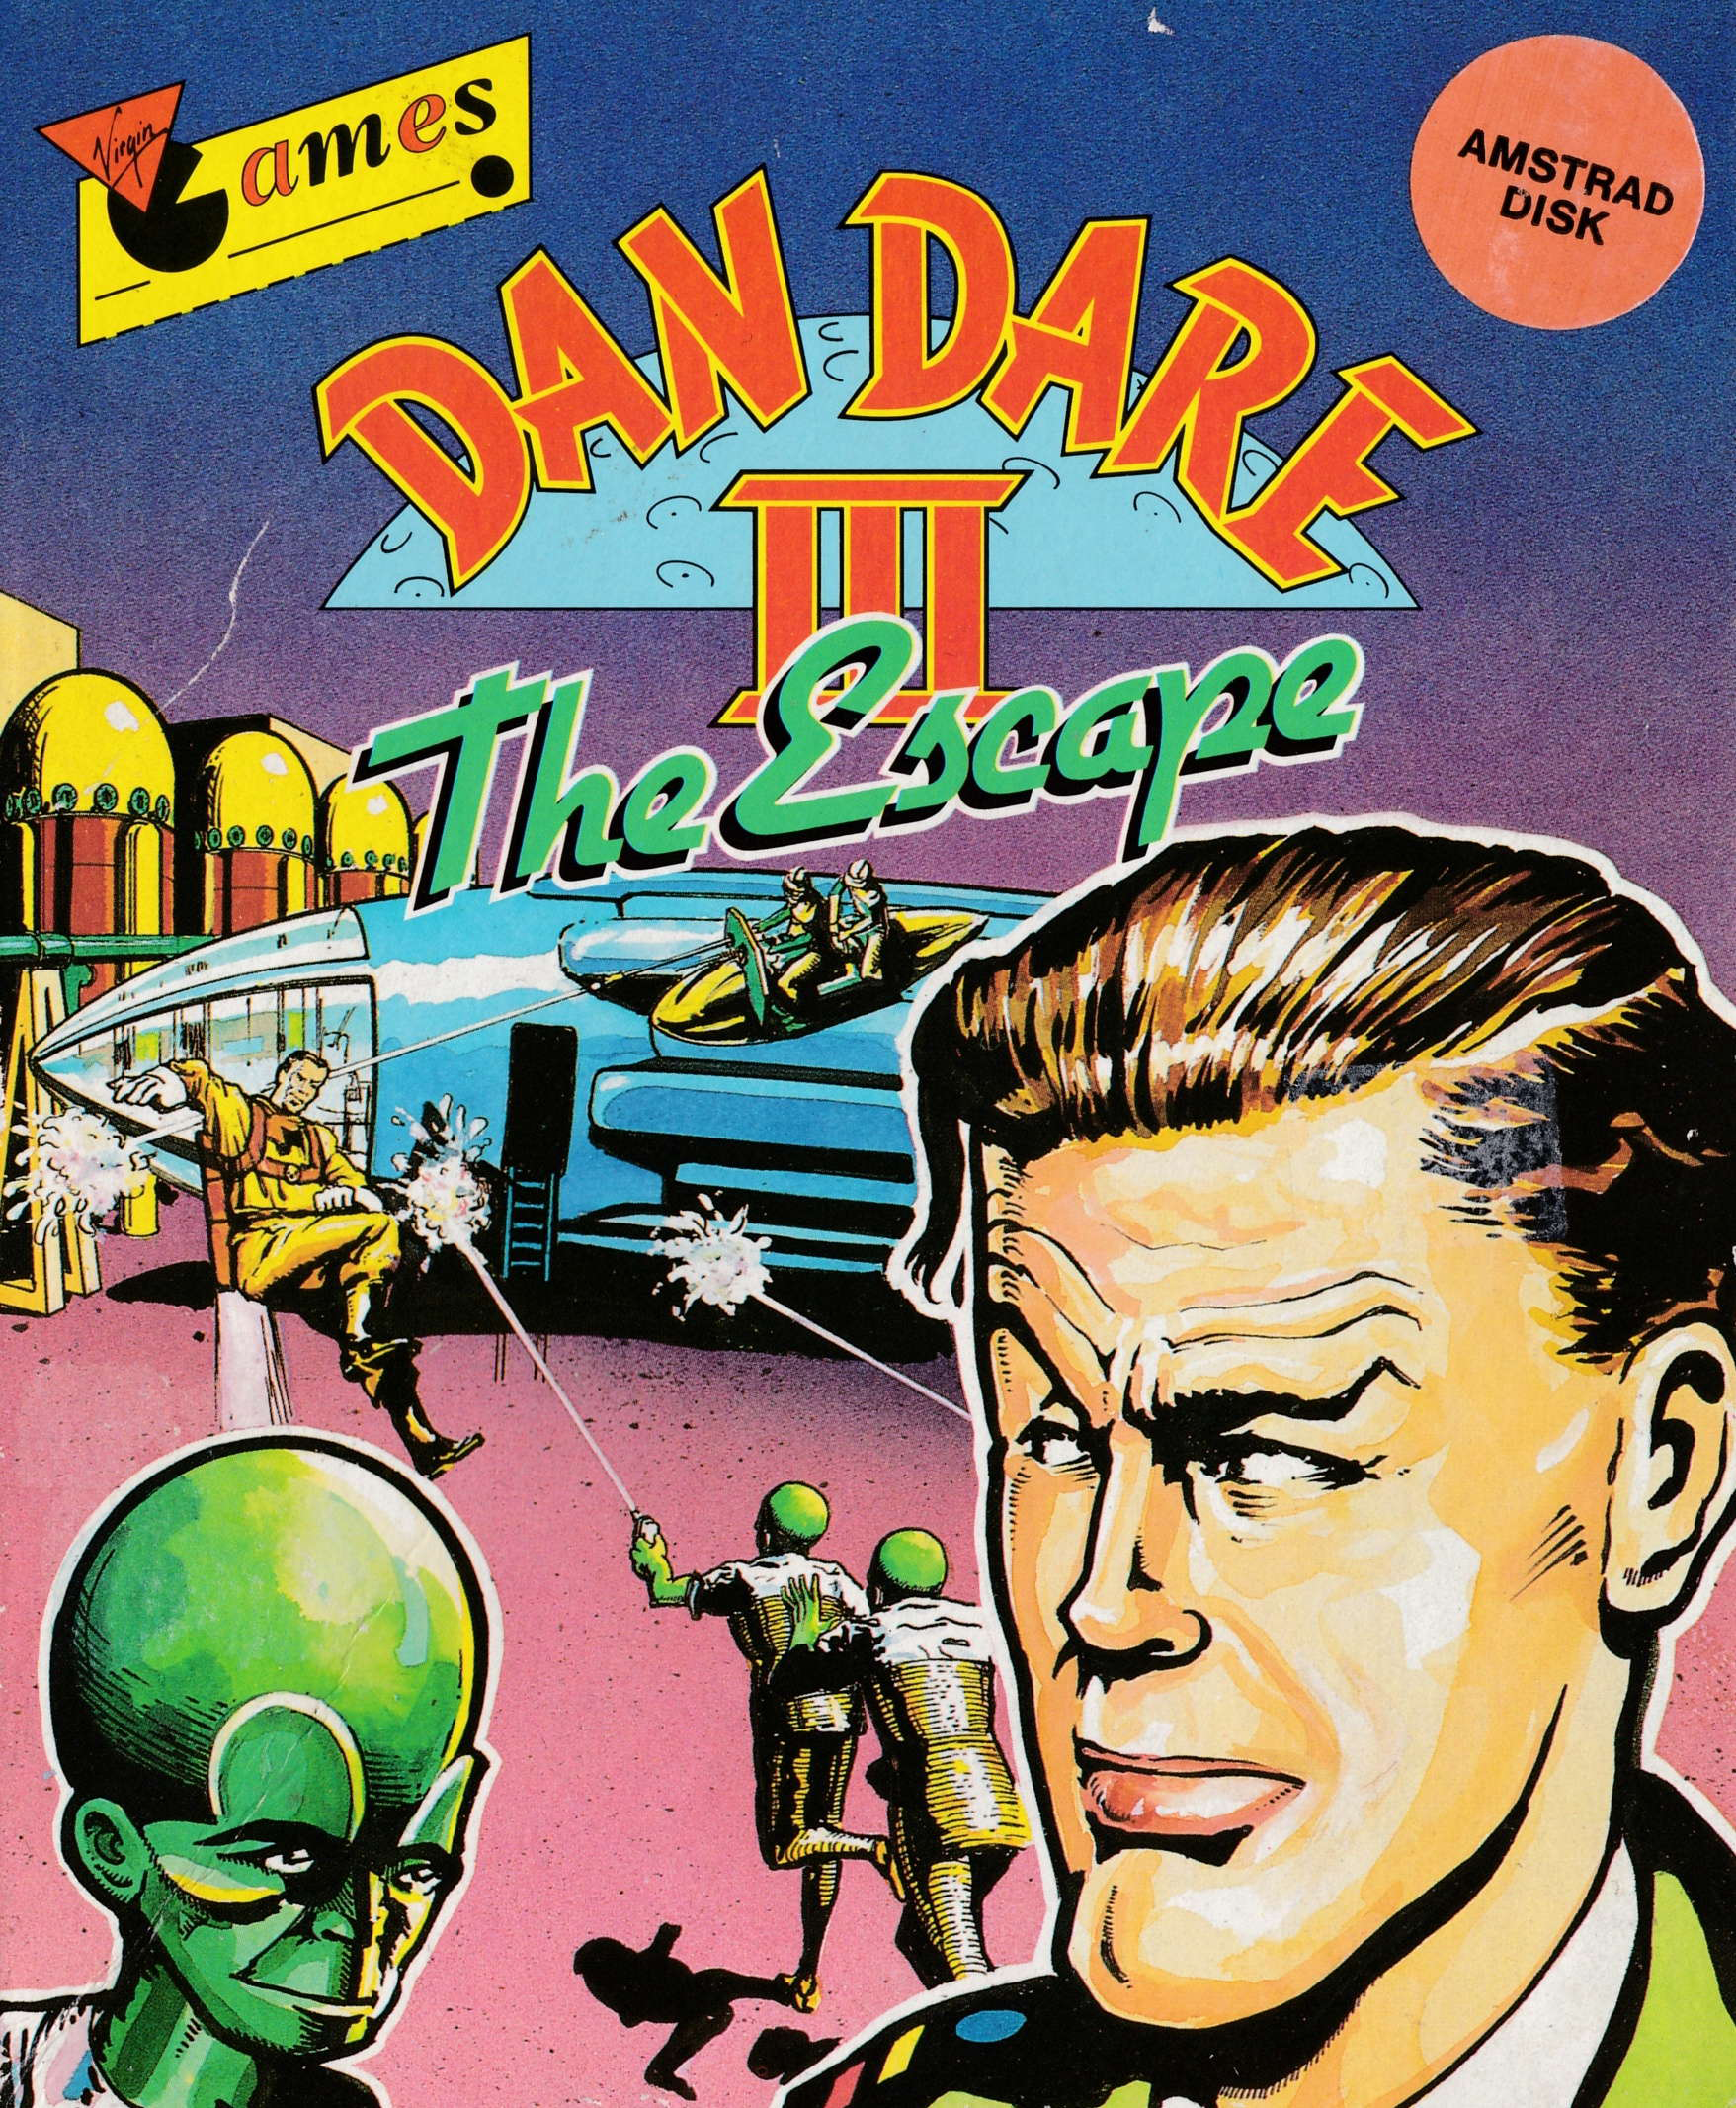 cover of the Amstrad CPC game Dan Dare III - The Escape  by GameBase CPC